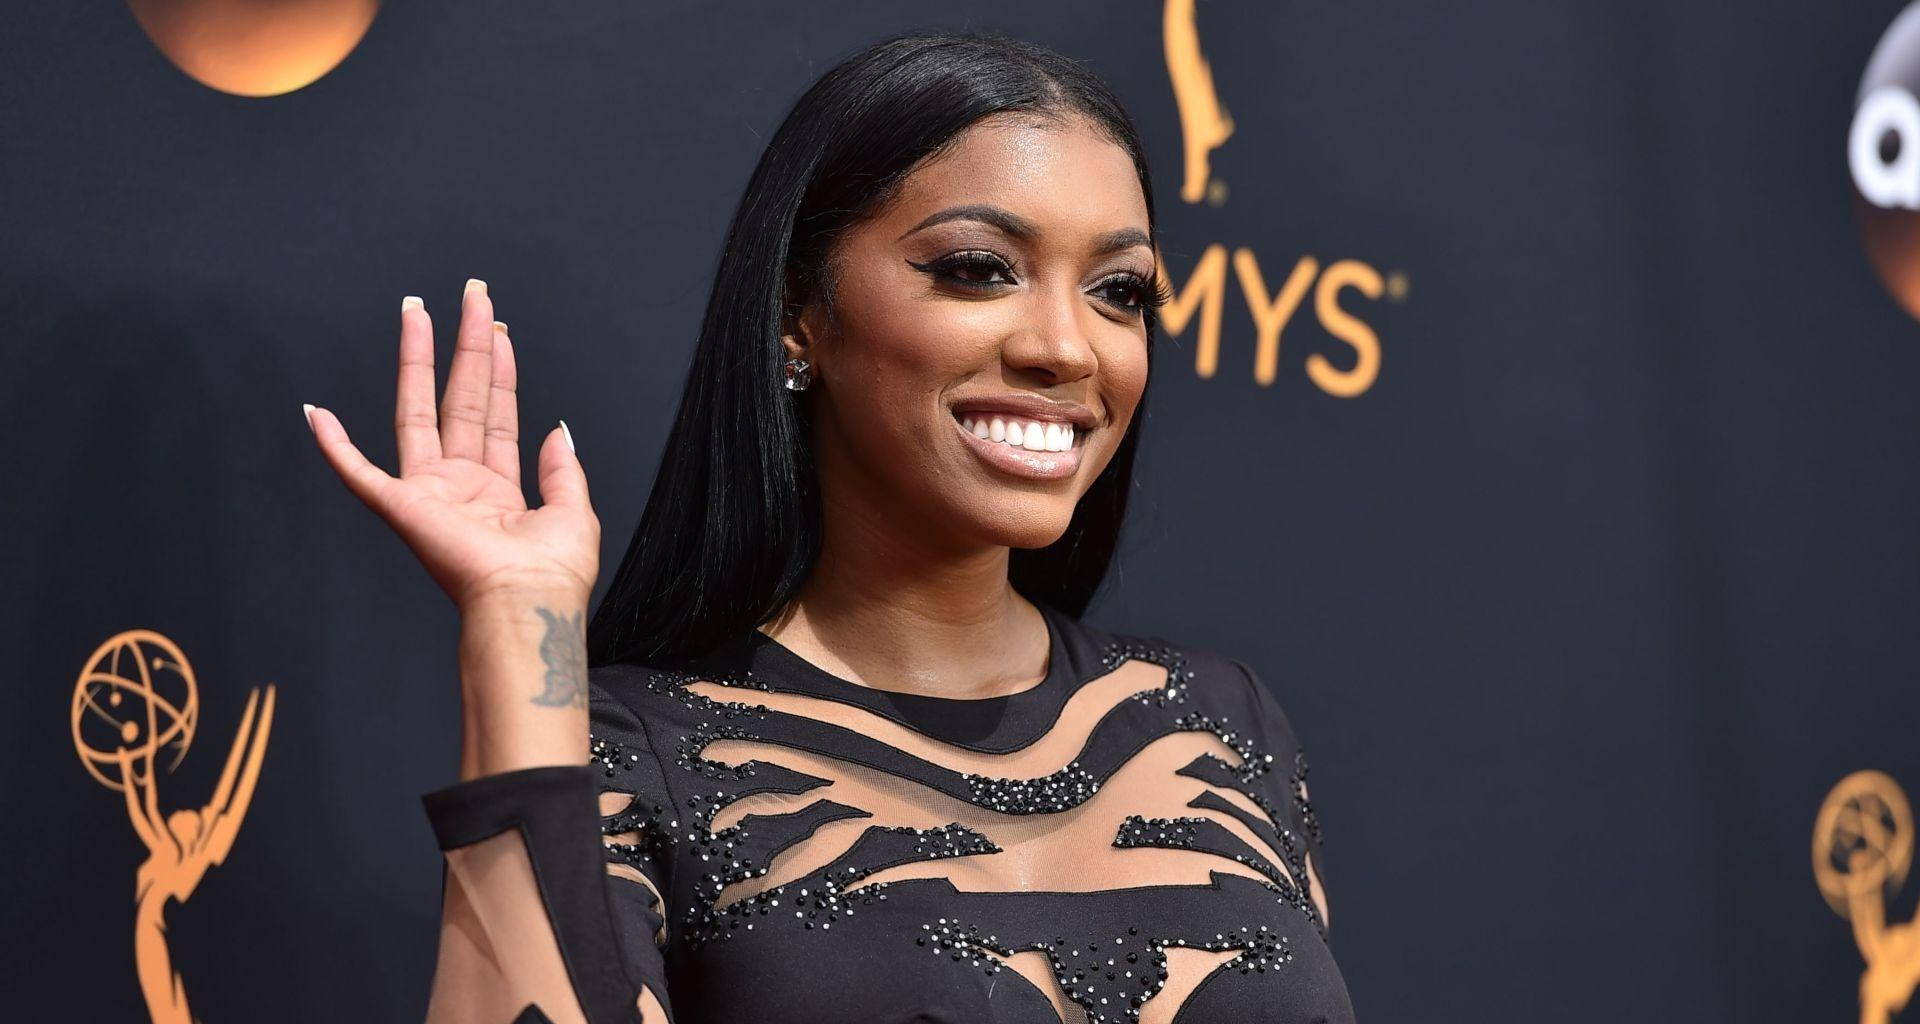 Porsha Williams Shares A Gorgeous Photo And Reveals The Secret Of Her Flawless Look